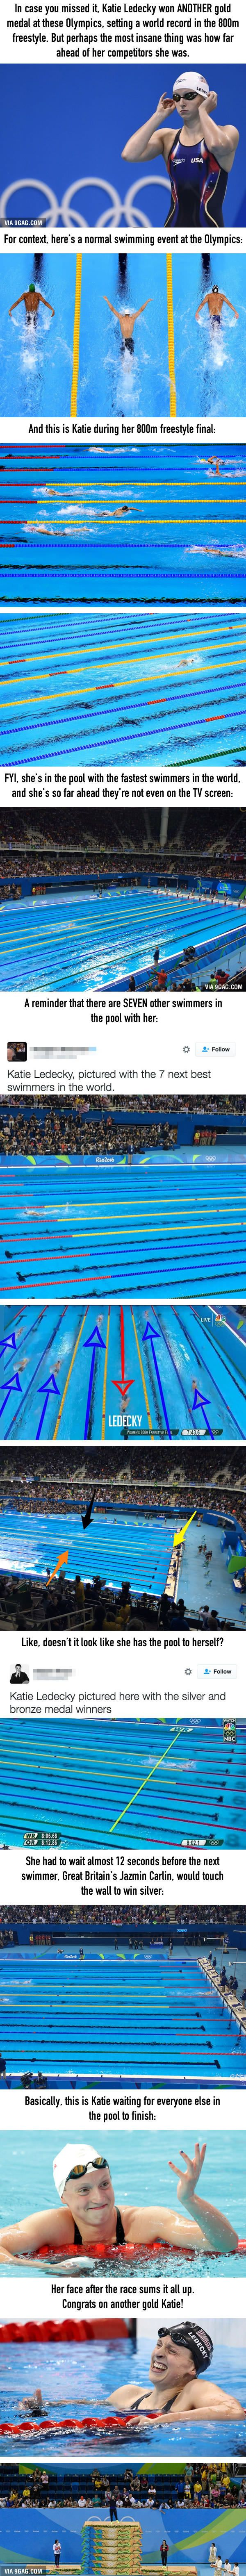 This Is How Much Faster Katie Ledecky Is Than Everyone Else In The Pool - 9GAG